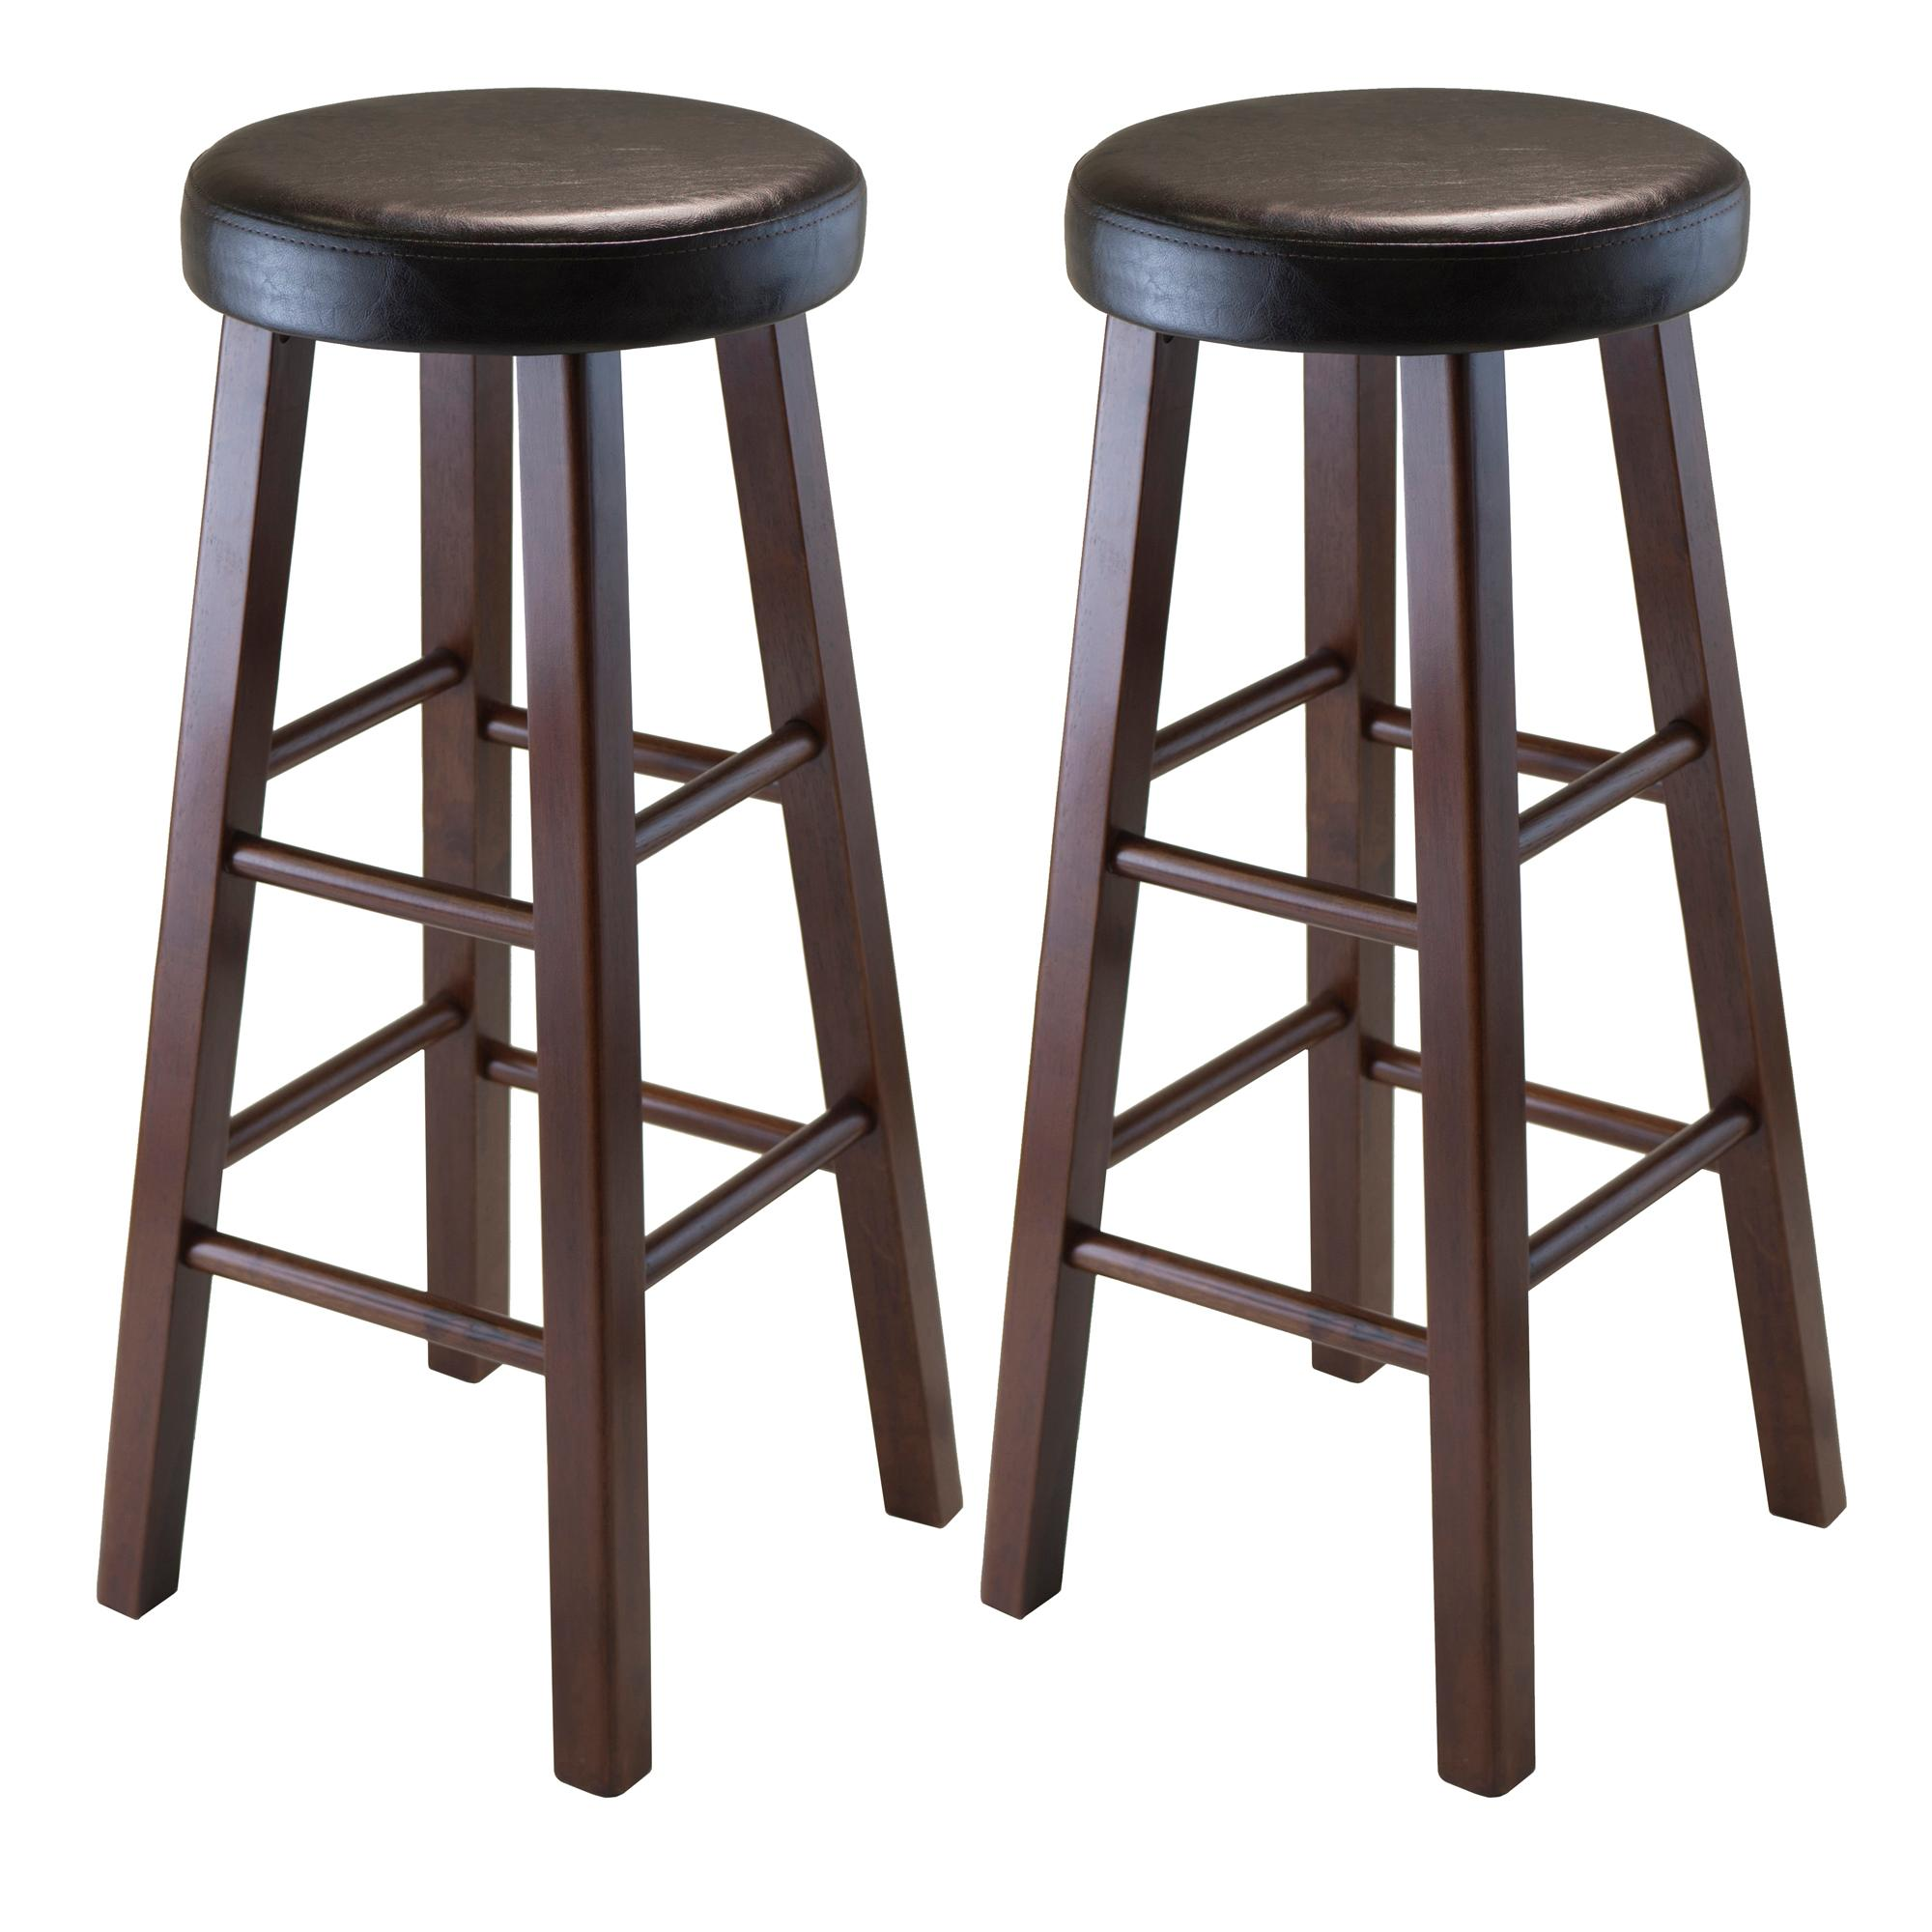 Amazon Winsome Wood Marta Assembled Round Bar Stool with PU